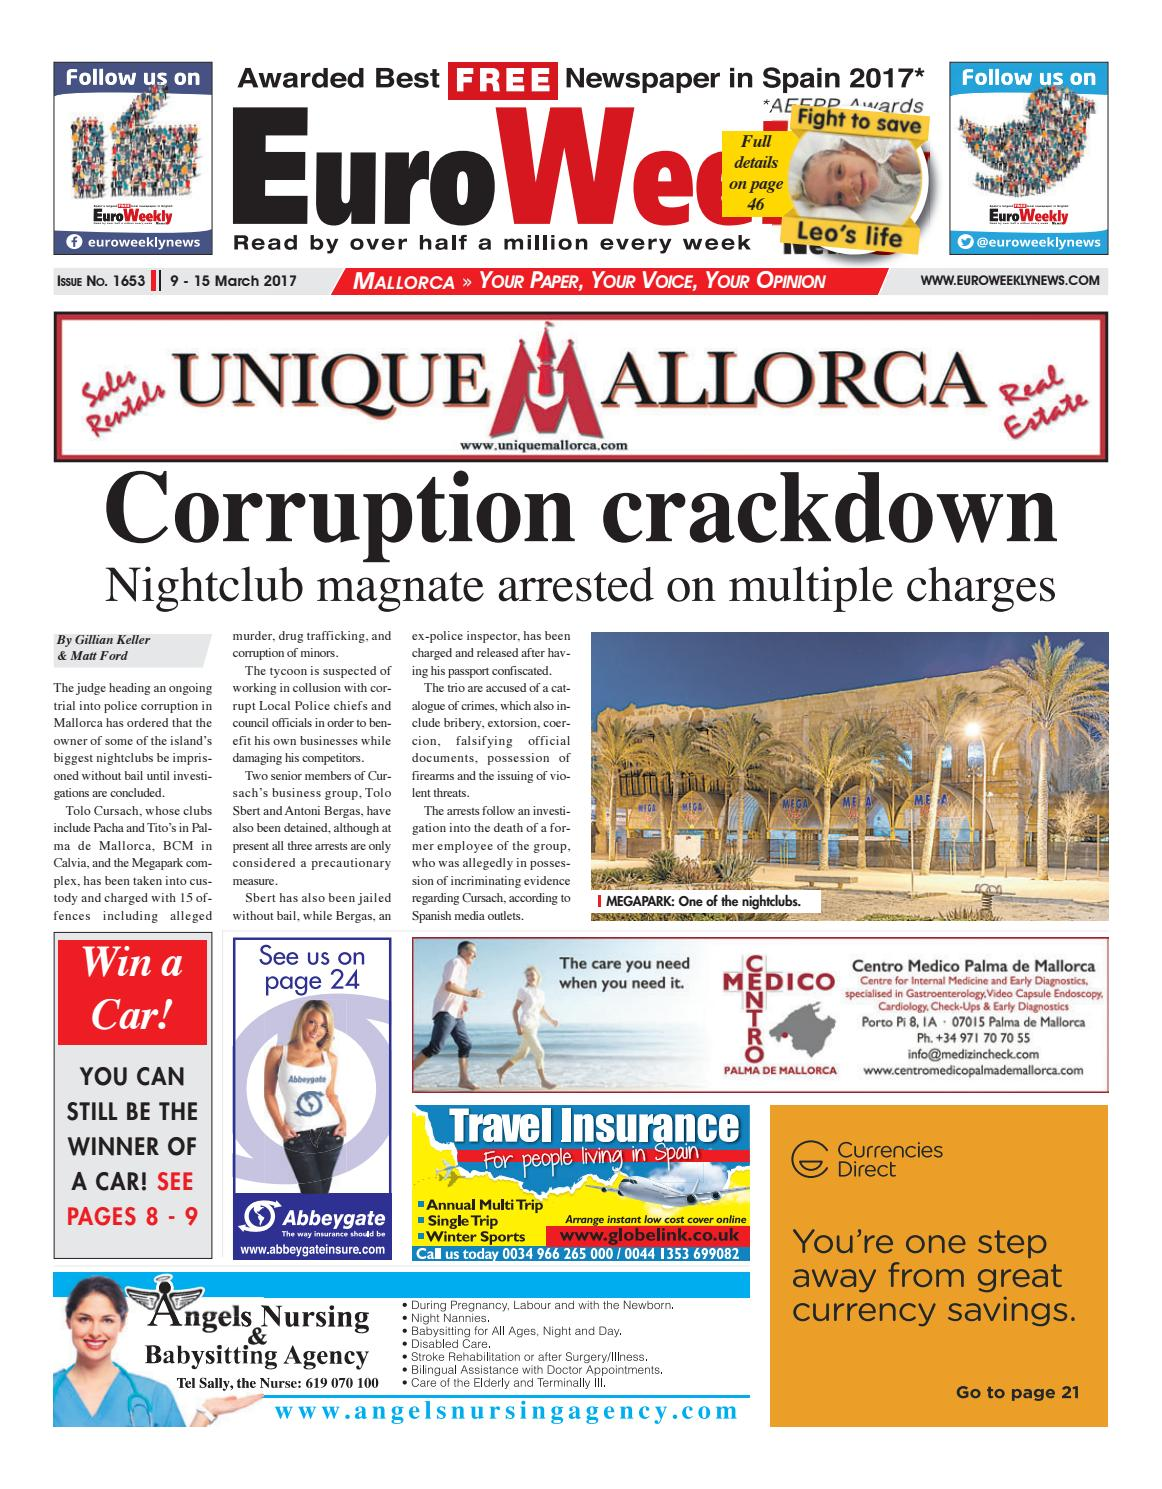 Euro weekly news mallorca 9 15 march 2017 issue 1653 by euro euro weekly news mallorca 9 15 march 2017 issue 1653 by euro weekly news media sa issuu fandeluxe Gallery